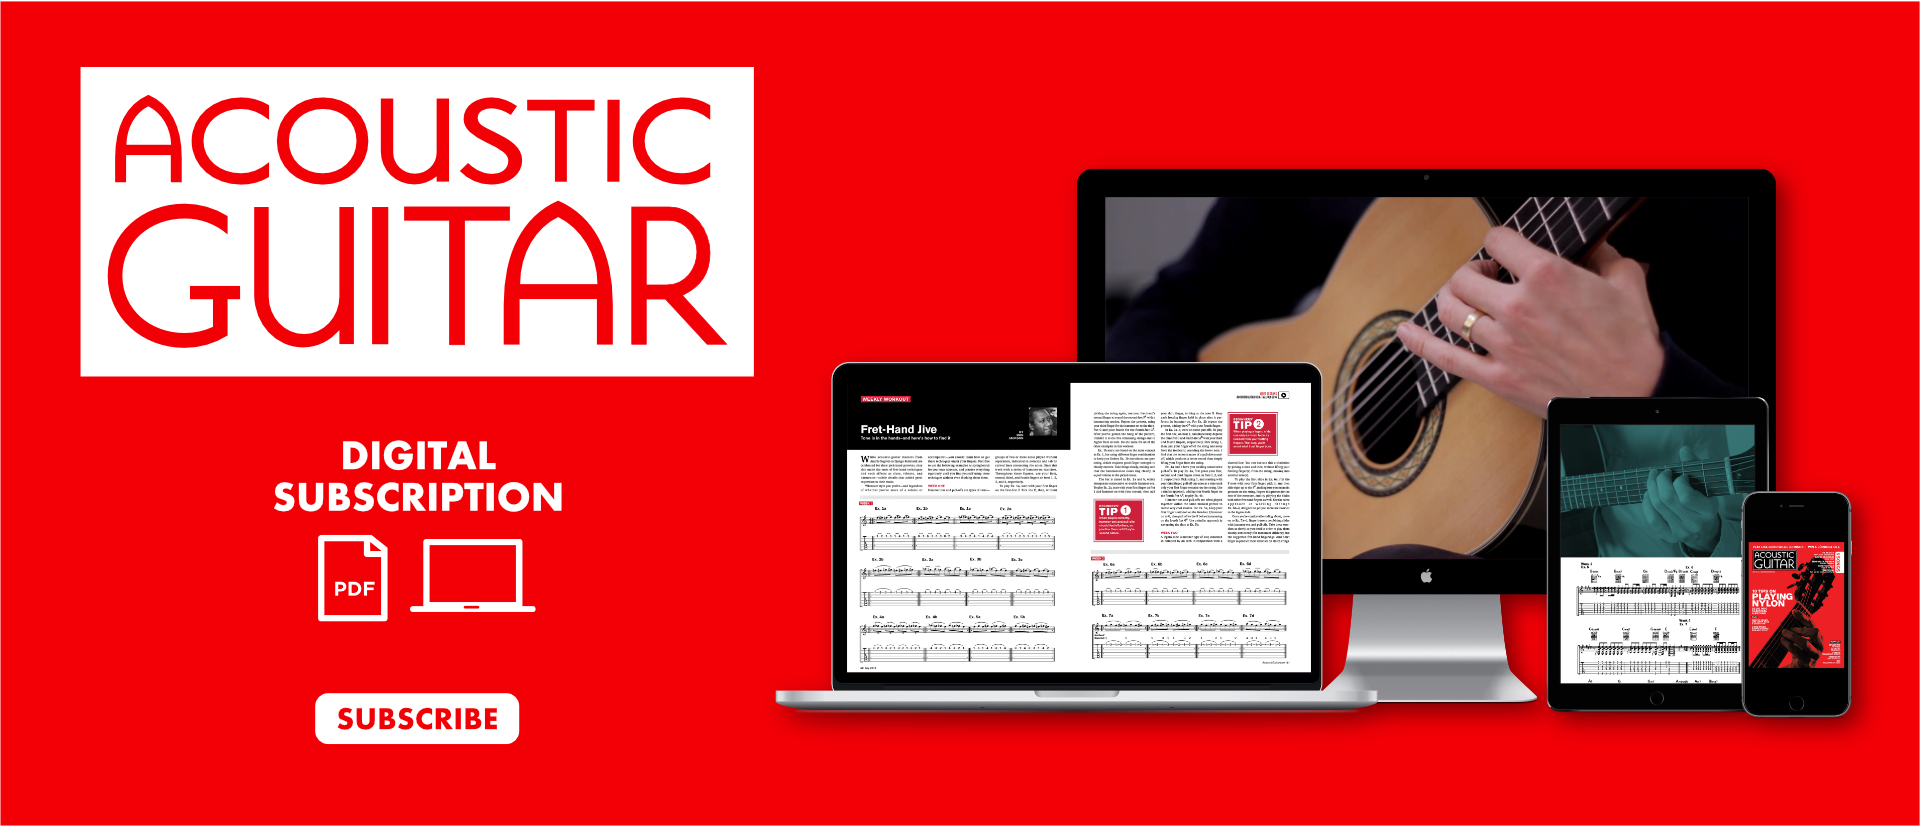 Acoustic Guitar Digital Subscription